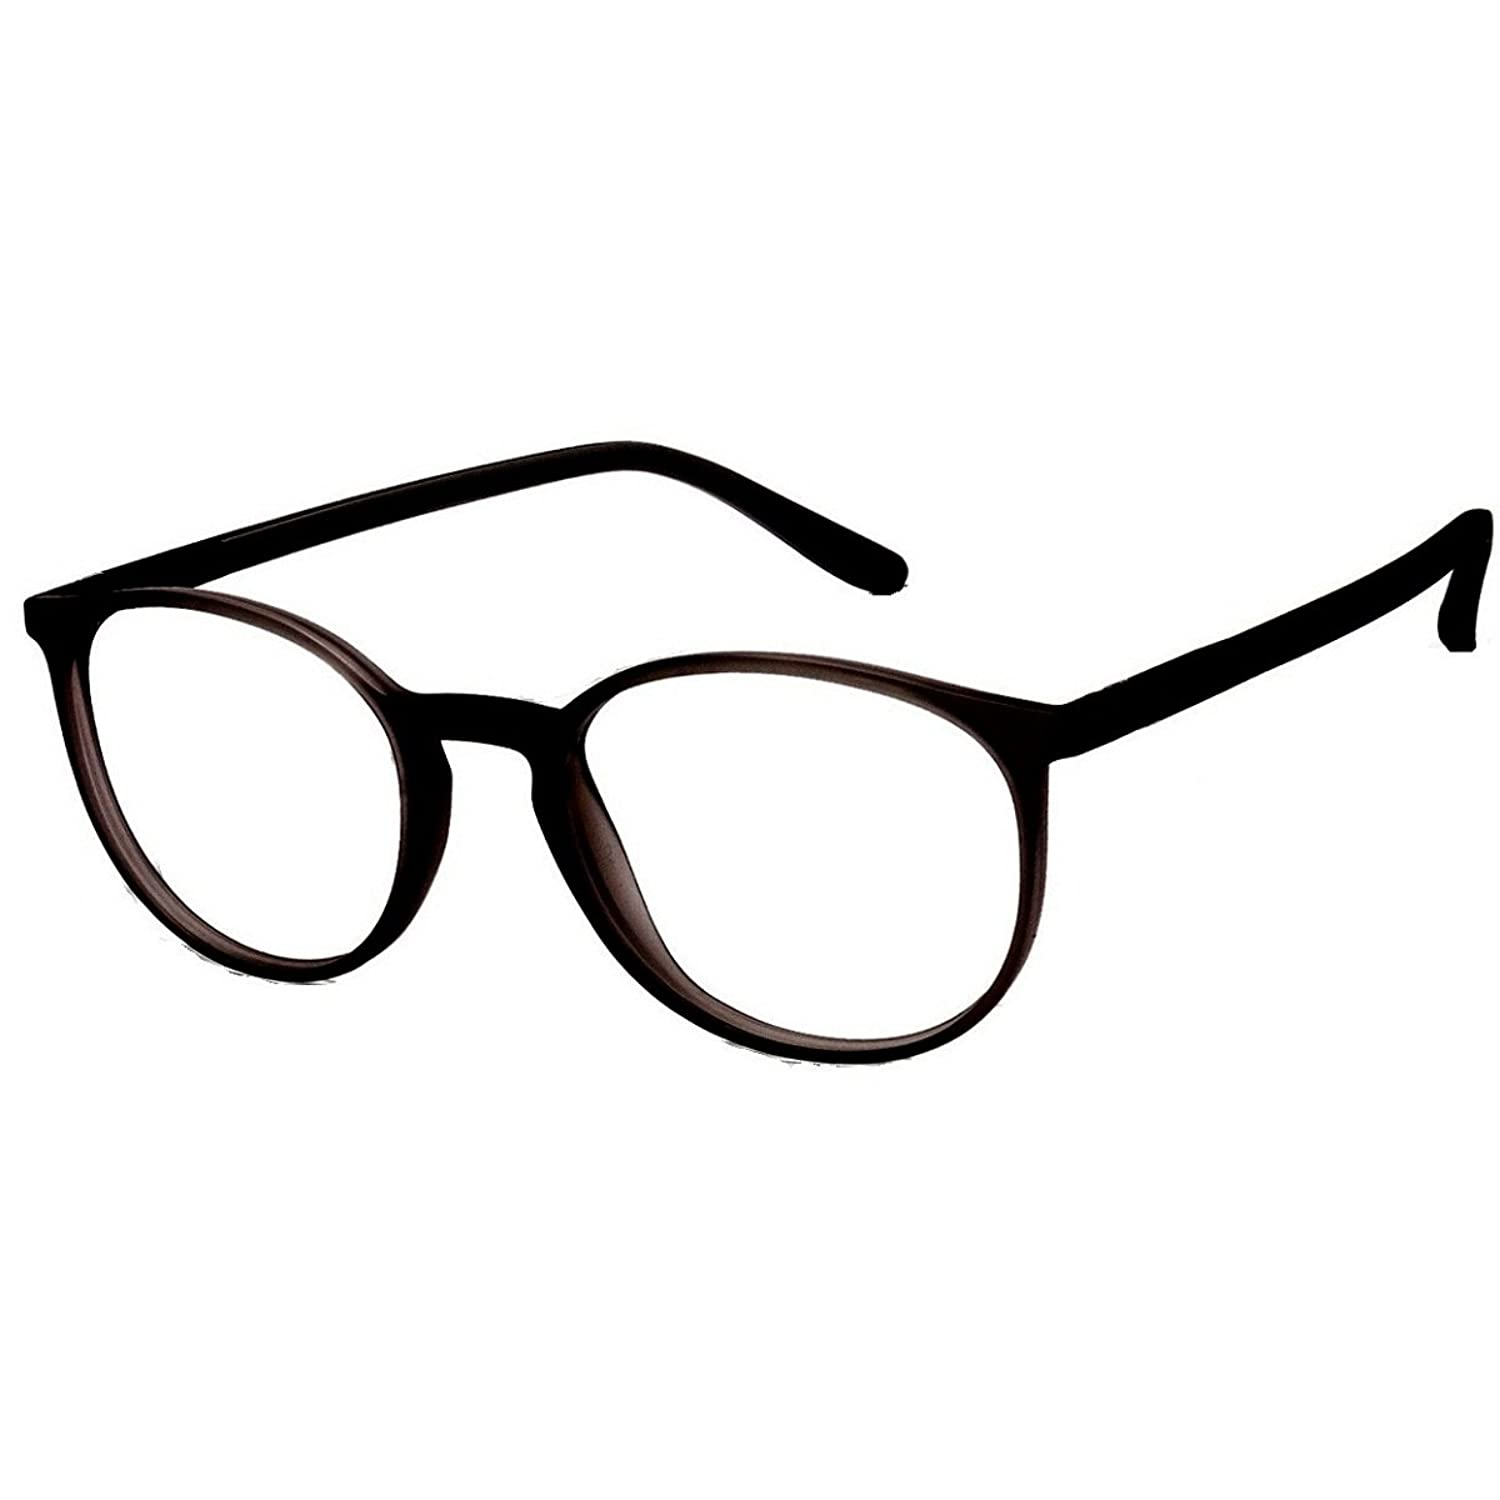 64682e3ce0e Glasses For Men  Buy Glasses For Men online at best prices in India ...